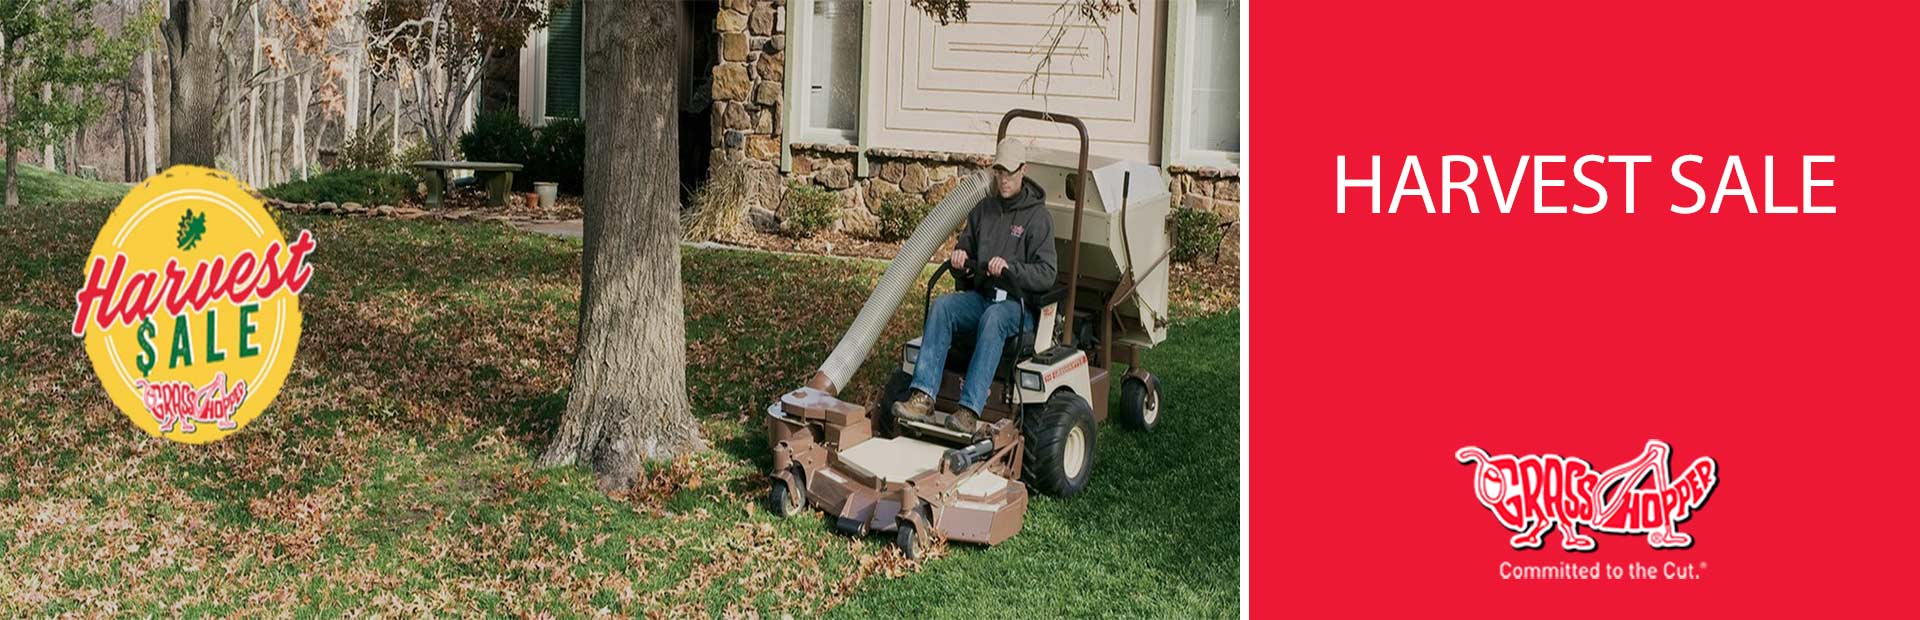 Wheel Belt Diagram And Parts List For Craftsman Walkbehindlawnmower